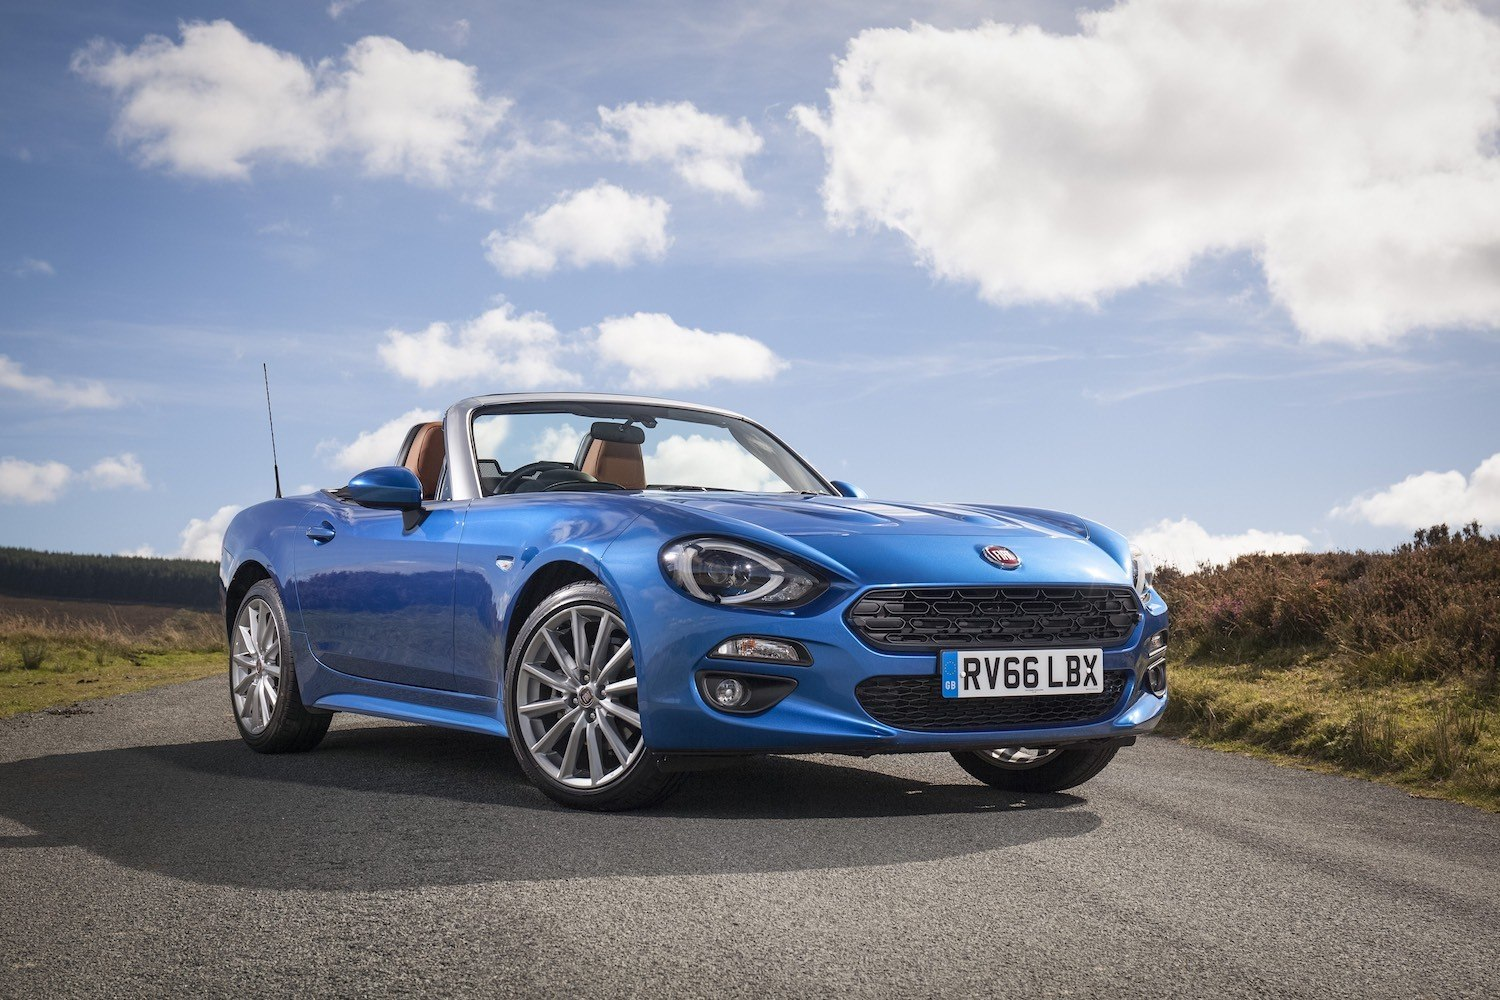 Neil Lyndon reviews the Fiat 124 Spider Lusso Plus for Drive 4